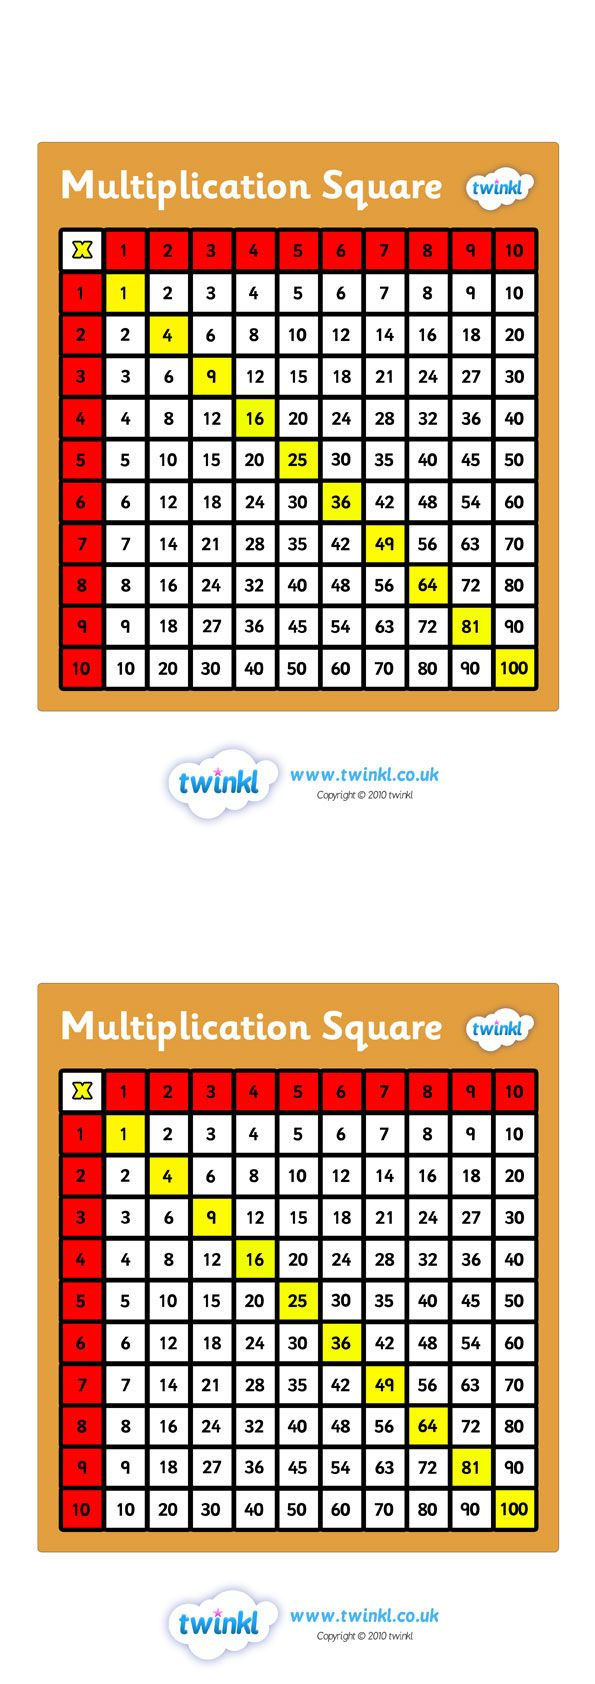 Twinkl Resources >> Multiplication Square  >> Classroom printables for Pre-School, Kindergarten, Primary School and beyond! education, home school, free, maths, multiplication square, mathematics, times table,